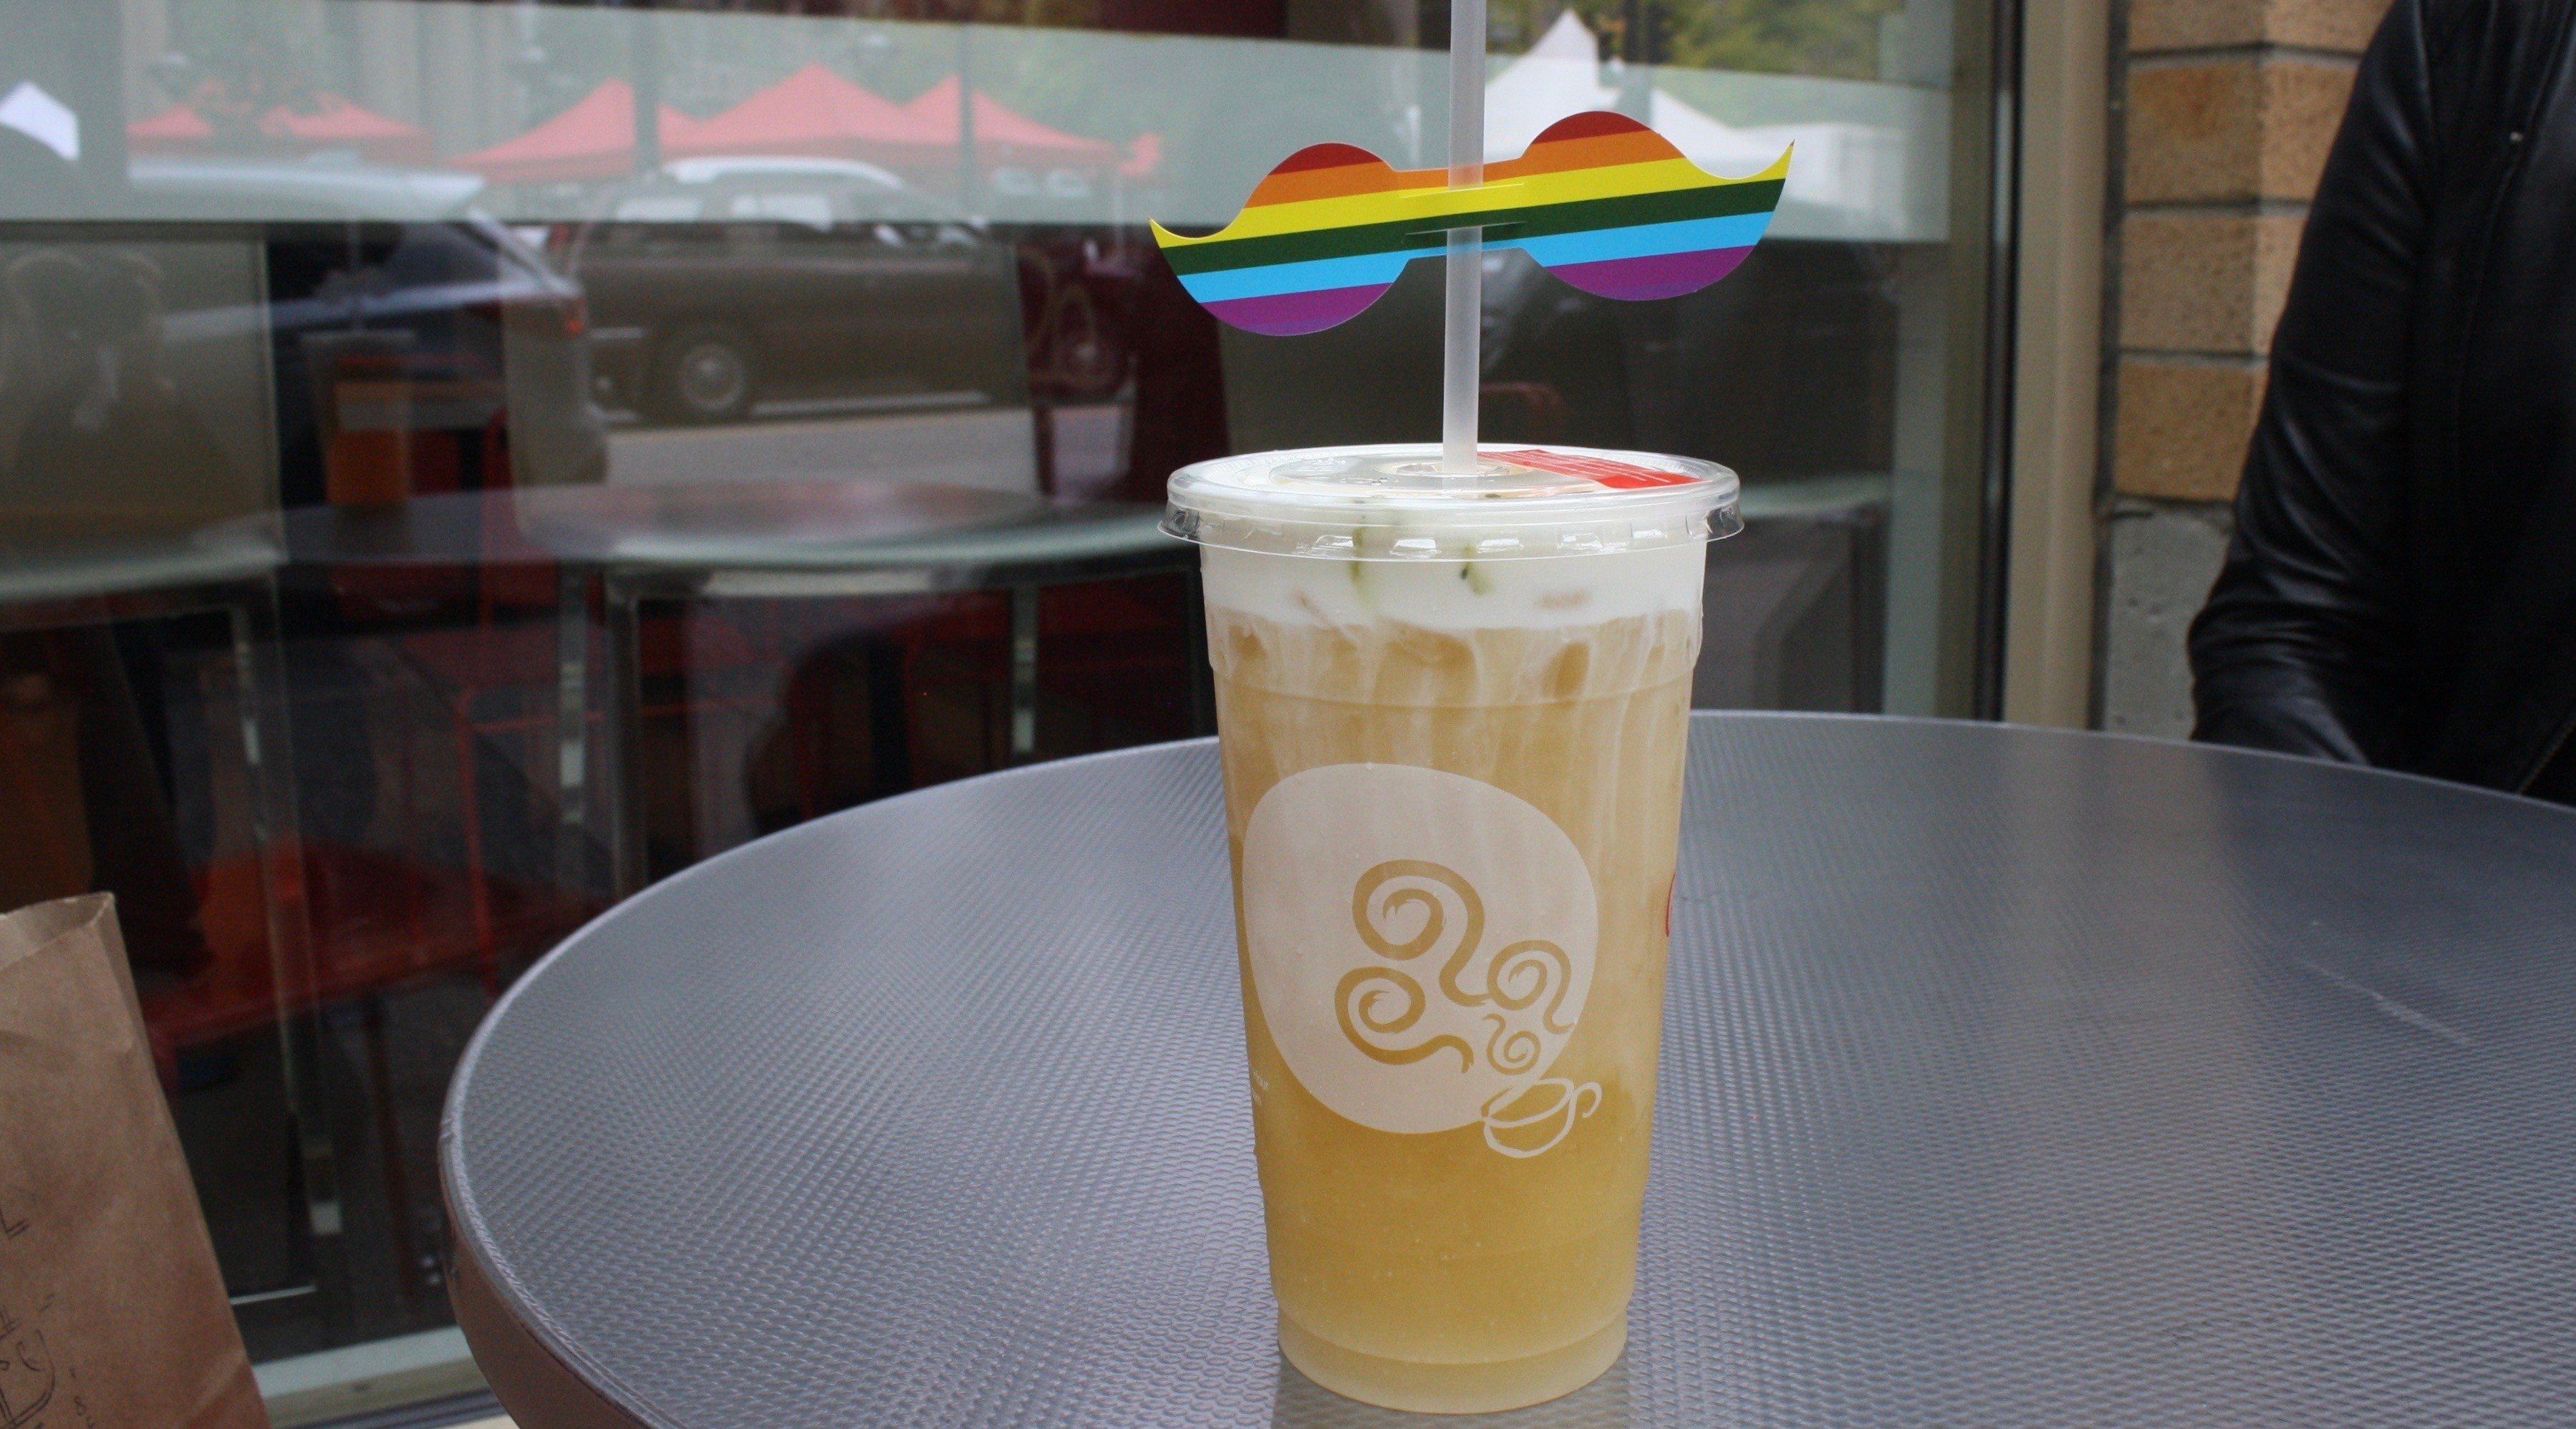 Gong Cha: Taiwanese tea empire lands in Vancouver